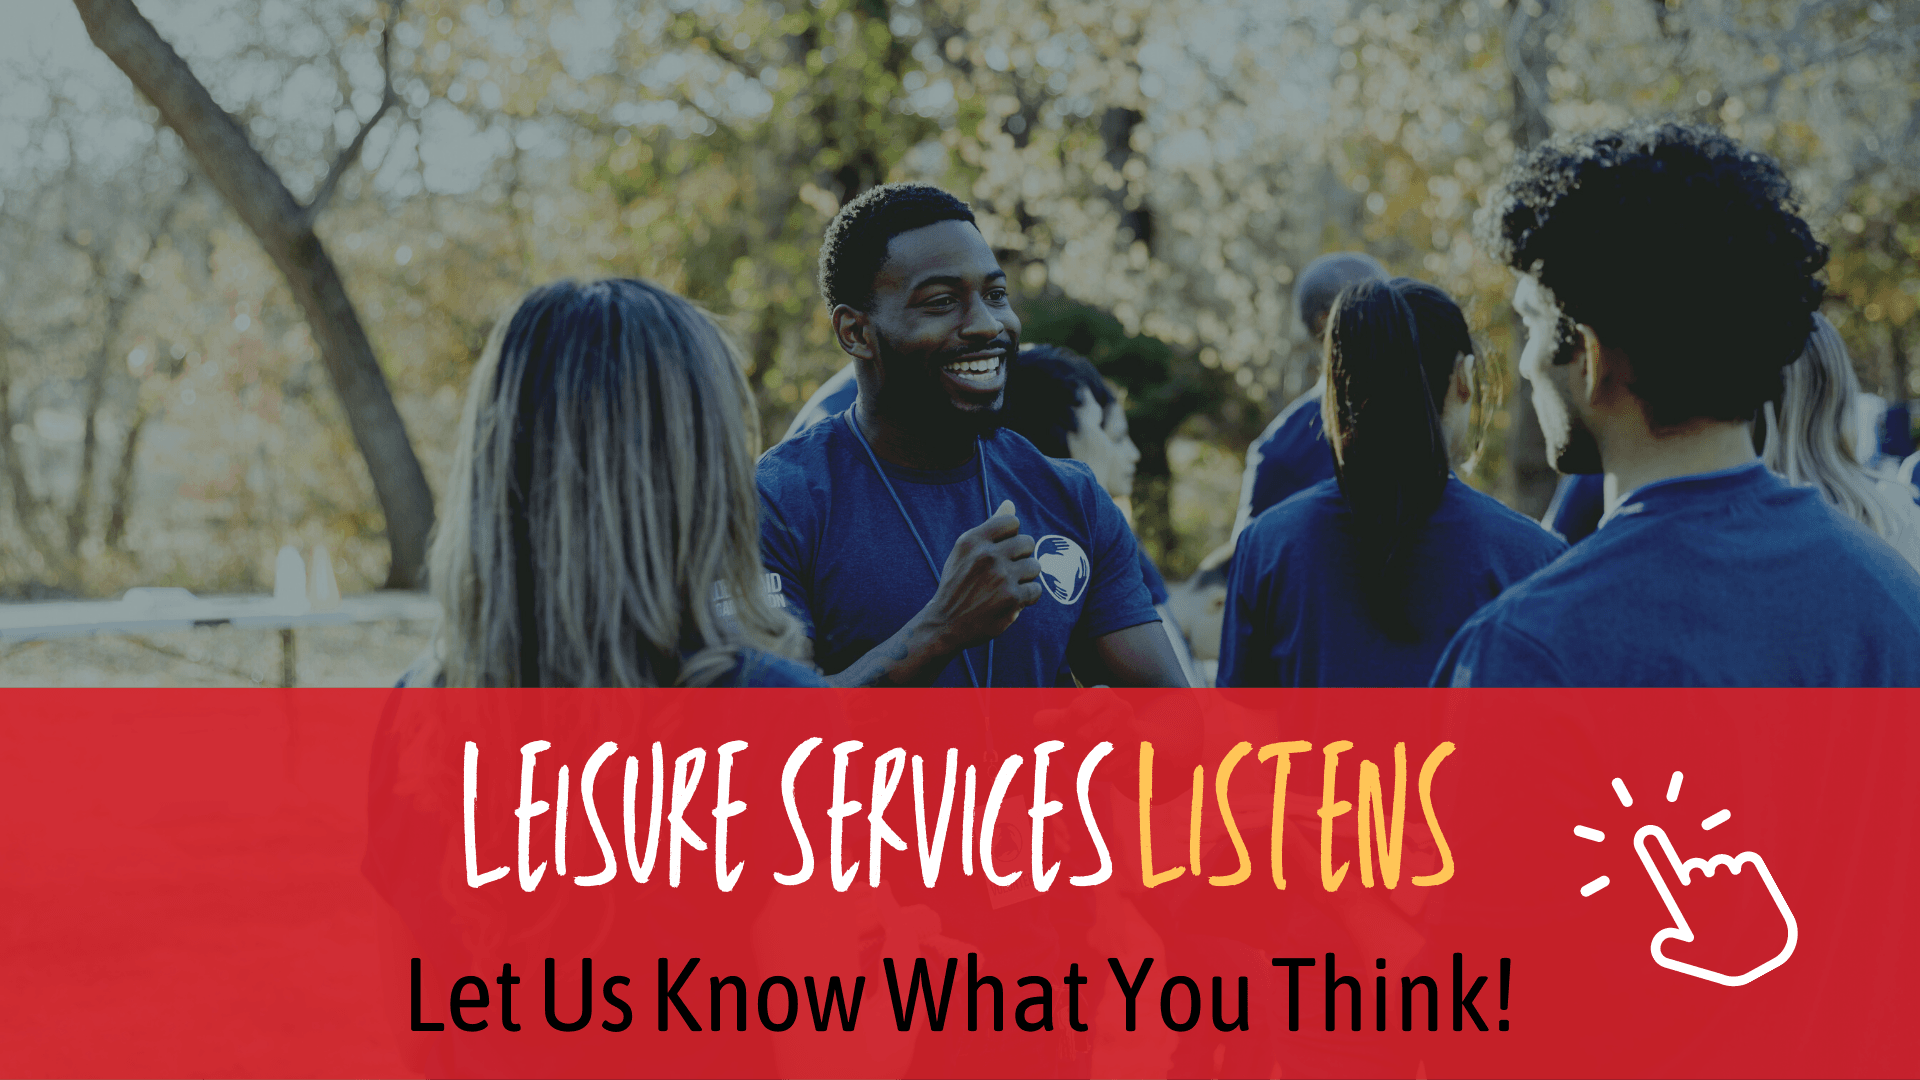 leisure services listens - graphic